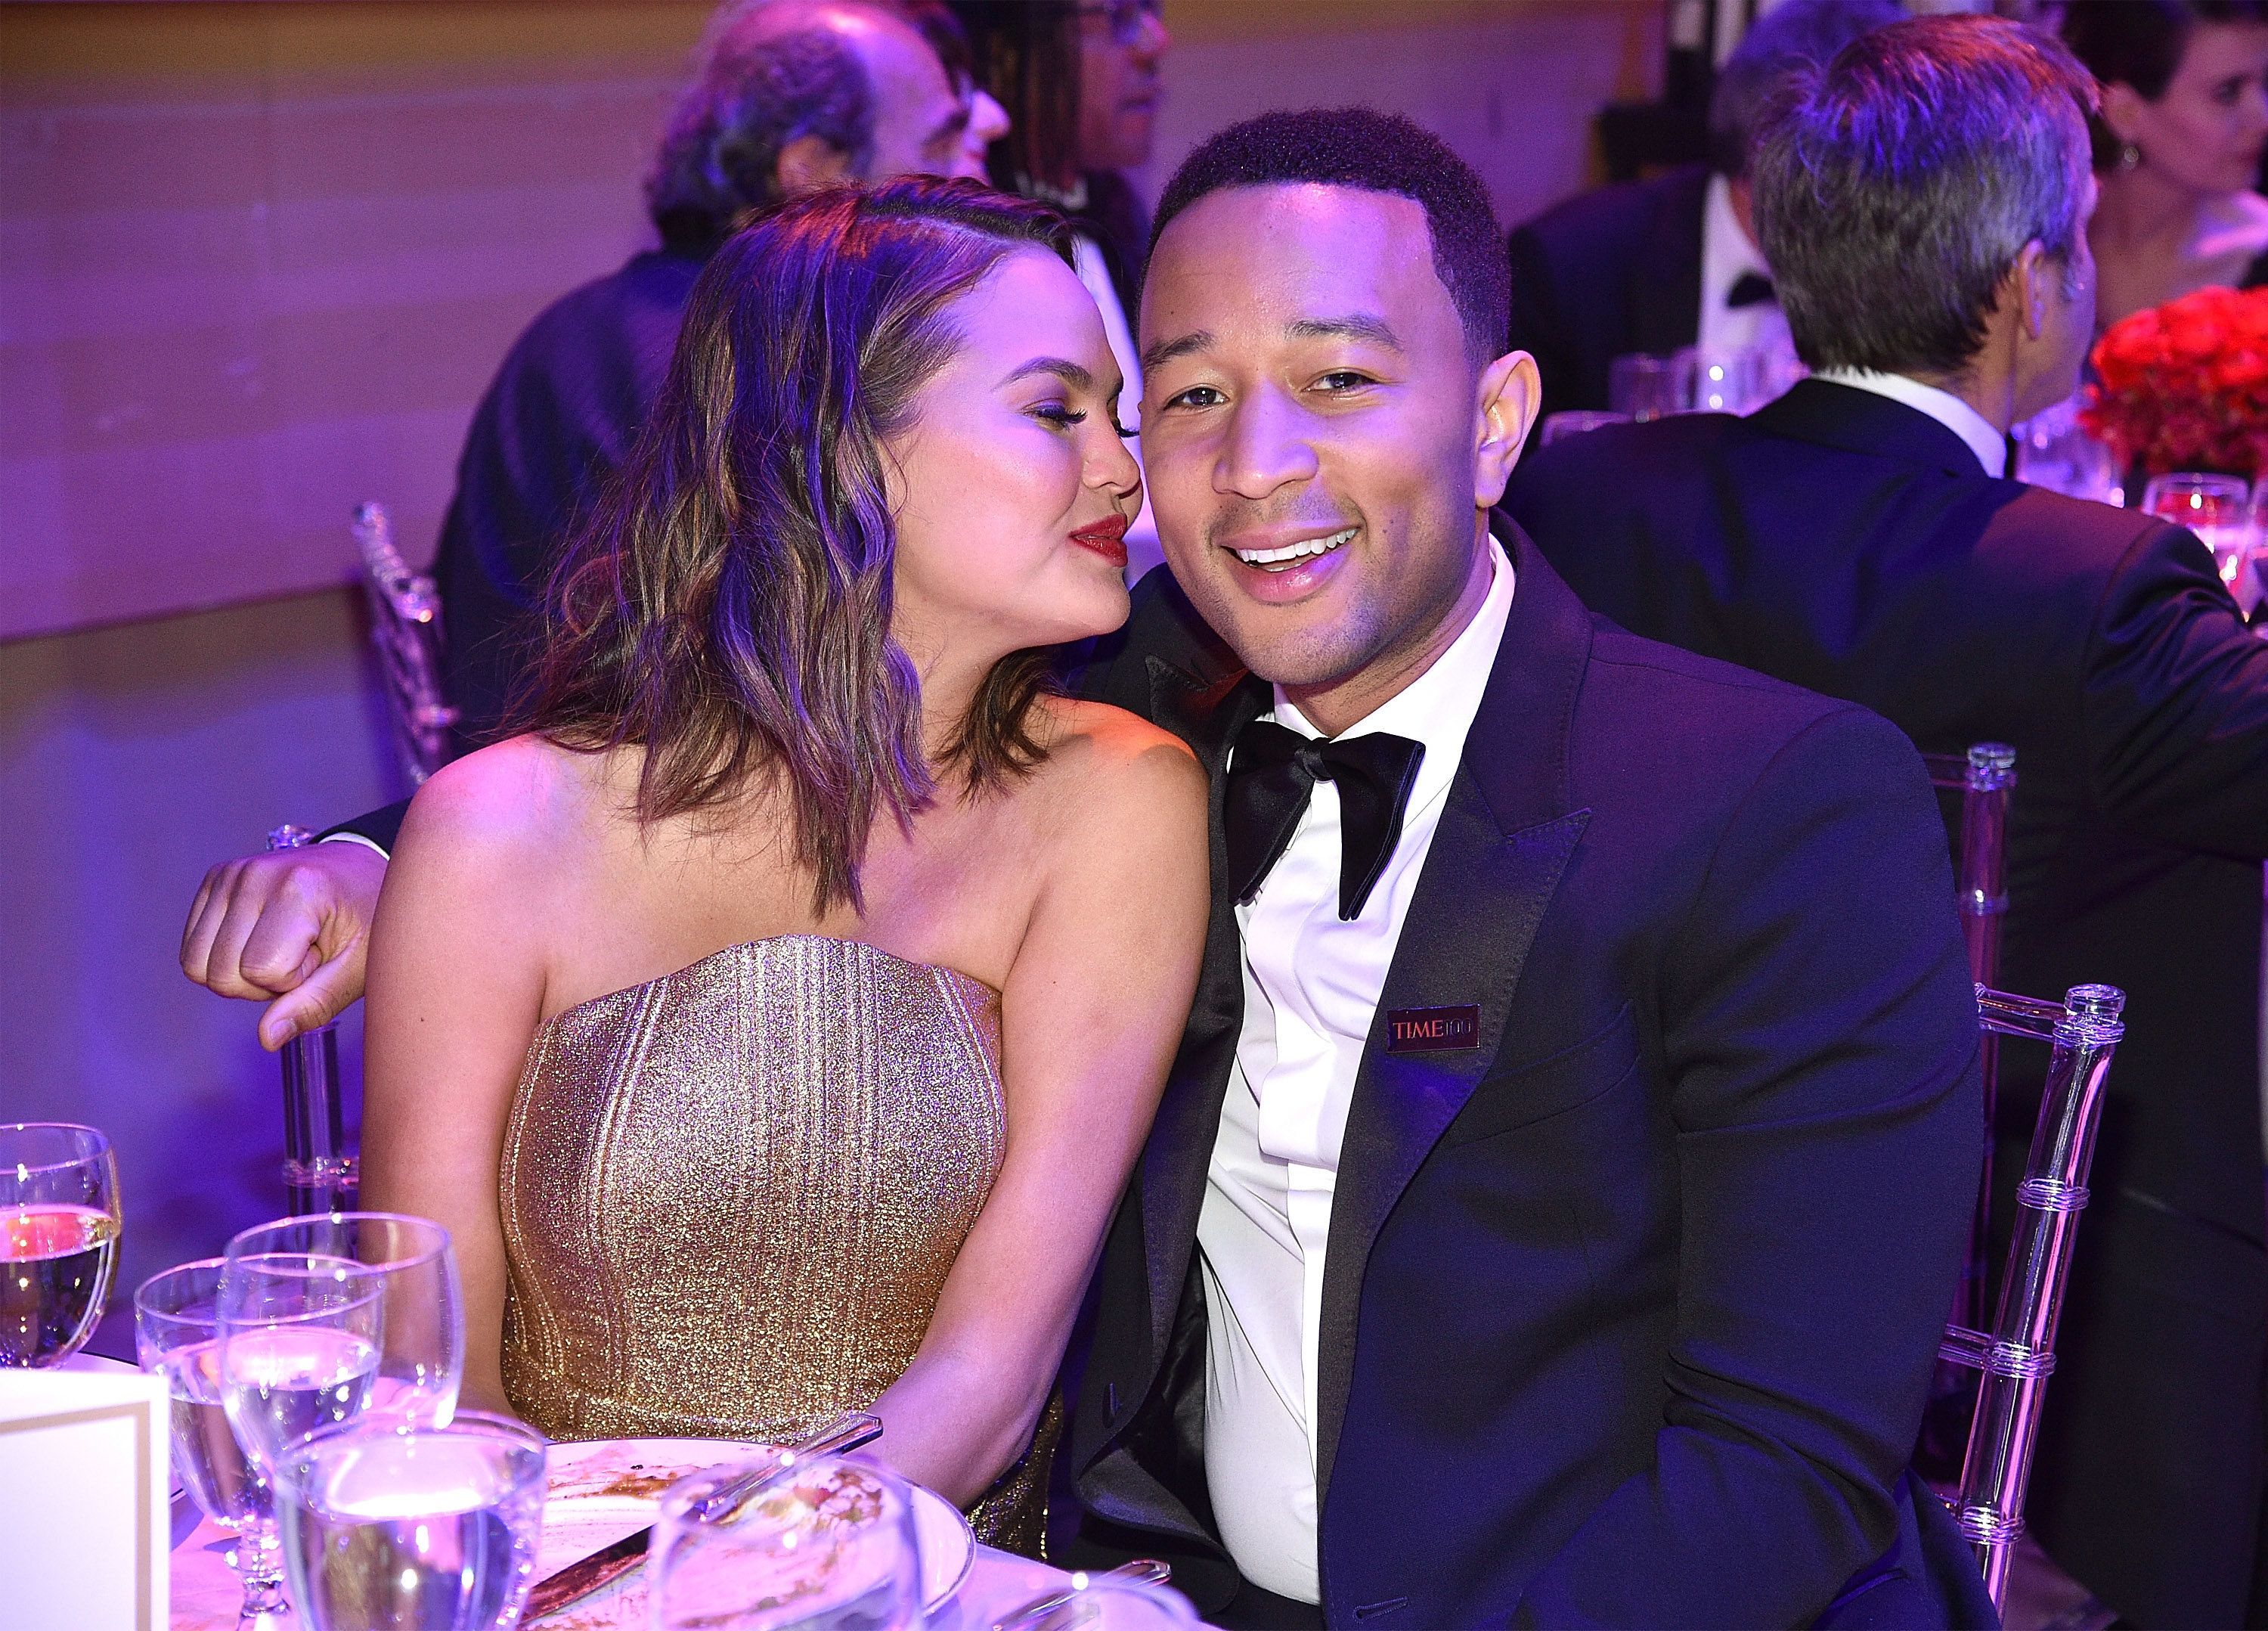 John Legend with his wife Chrissy Teigen at the Time 100 Gala on April 25,